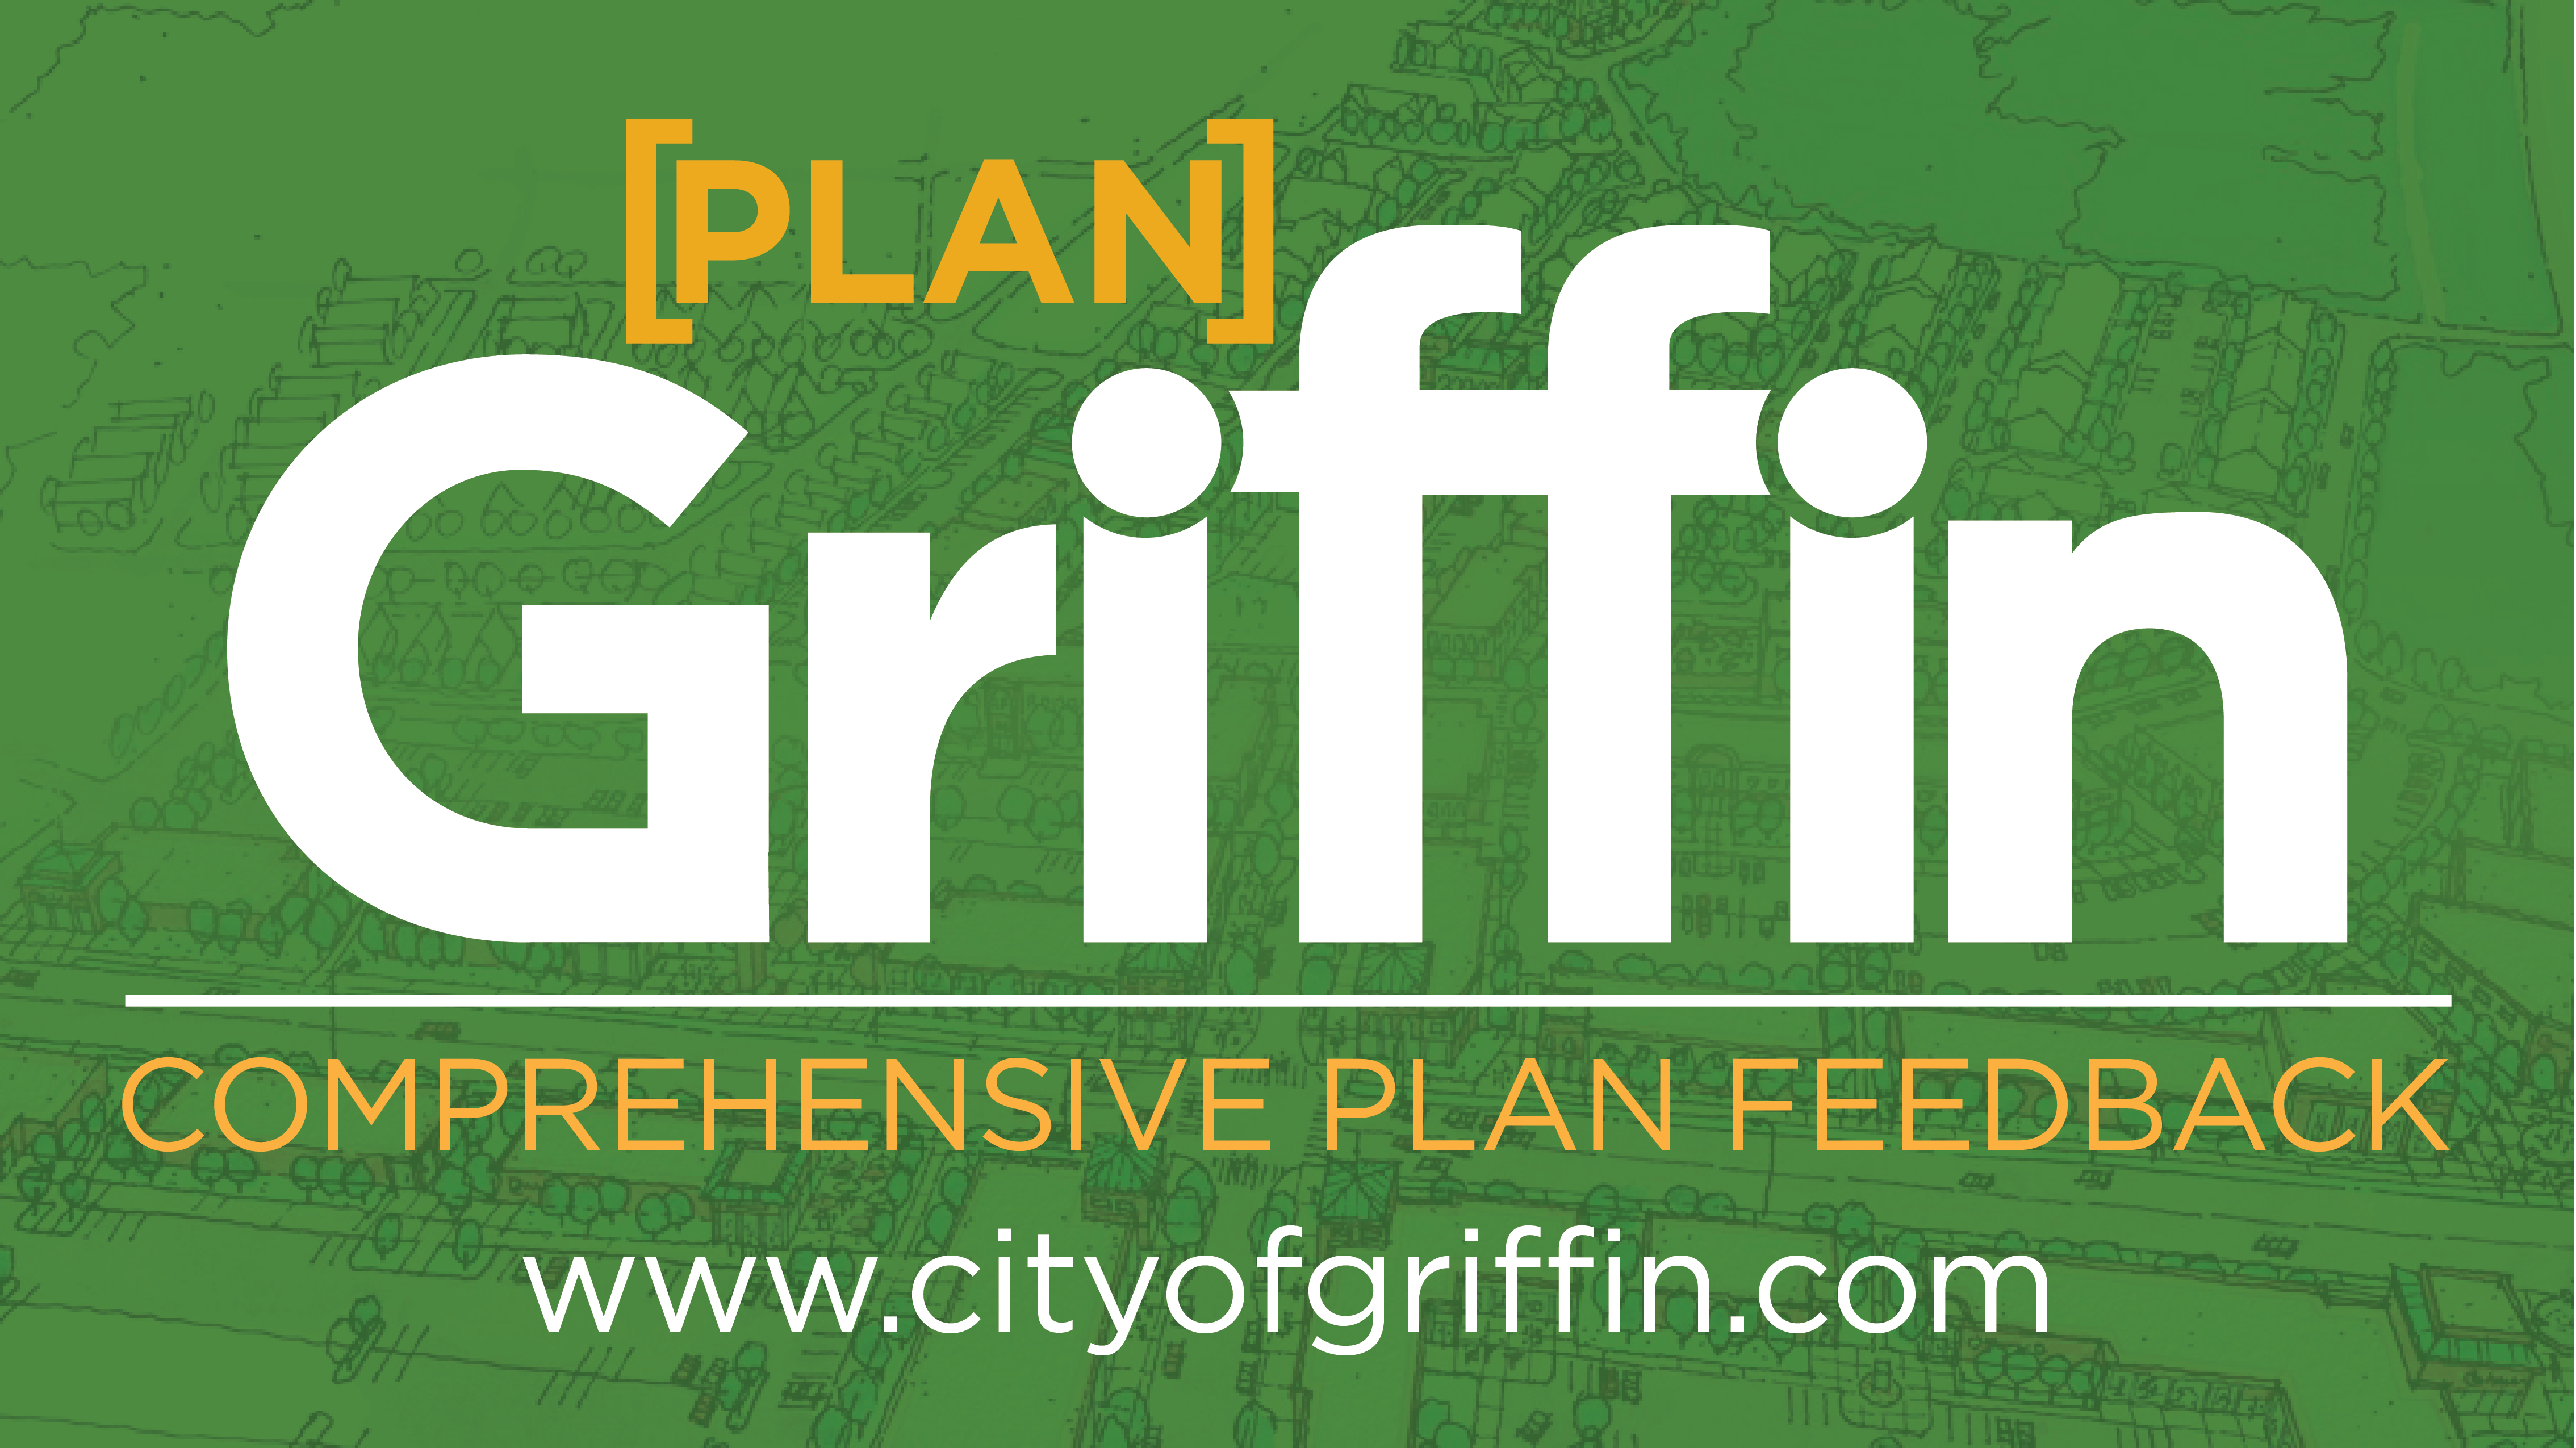 Griffin Logo the word Plan Comprehensive Plan Feedback